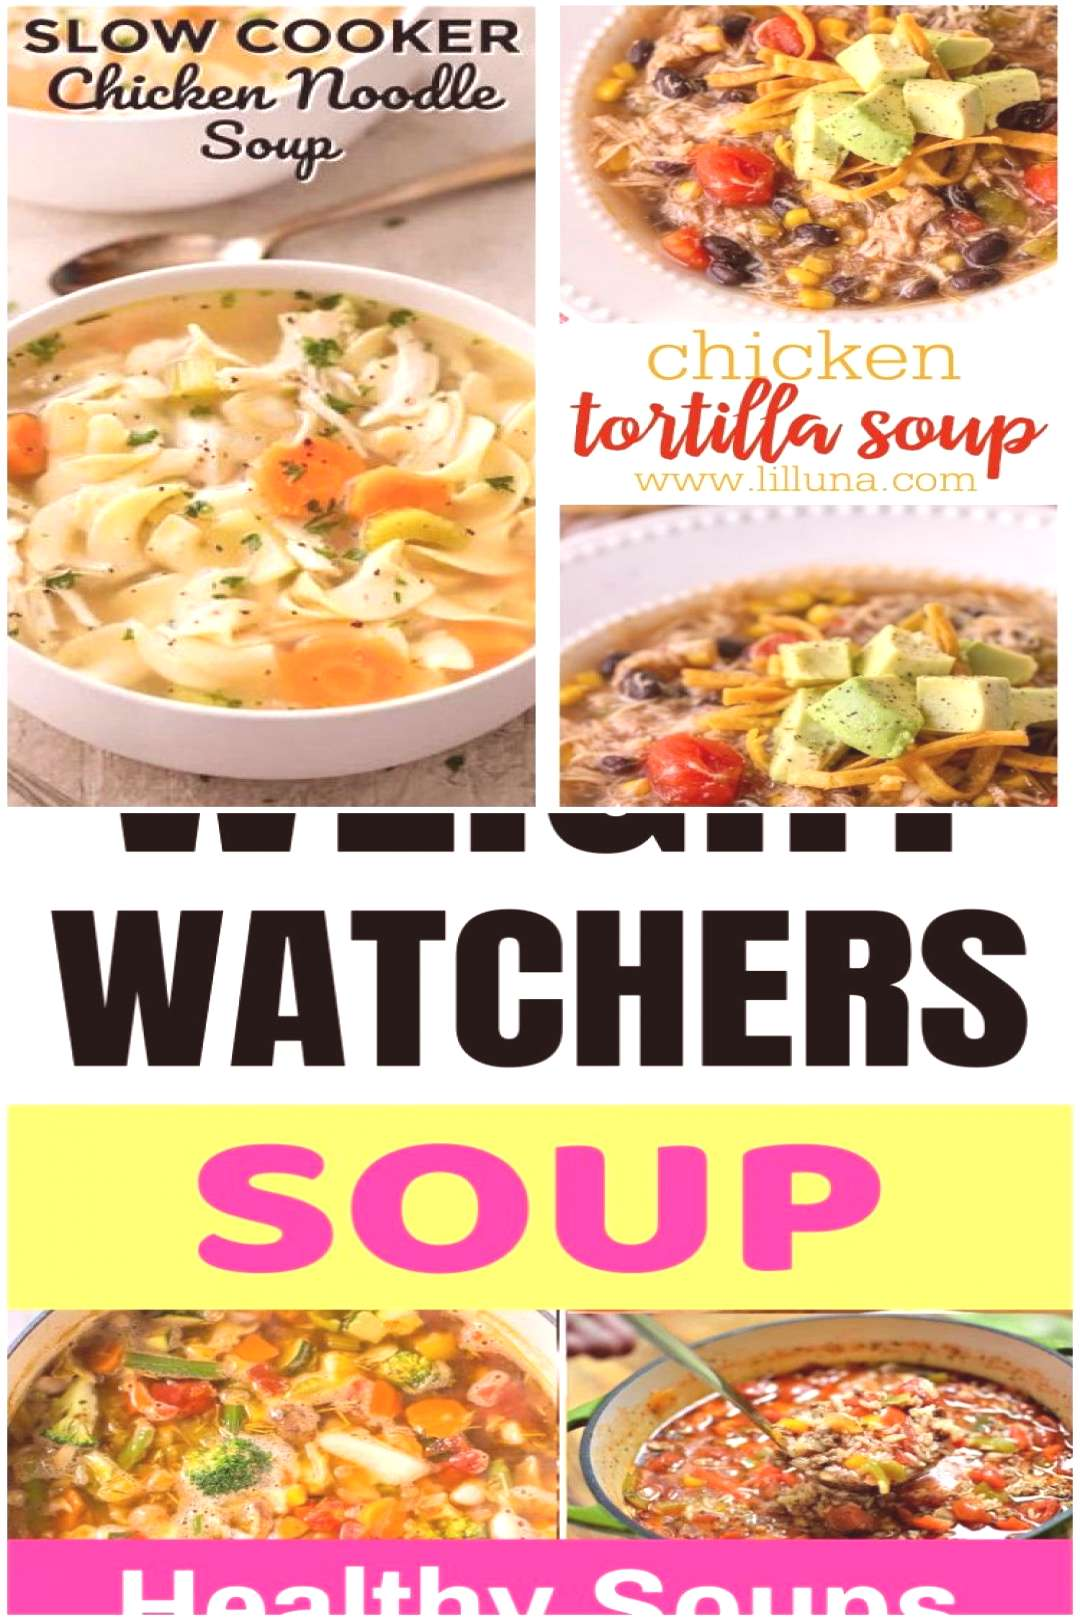 Crockpot Chicken Noodle Soup - Spend With Pennies Crockpot Chicken Noodle Soup - Spend With Pennies